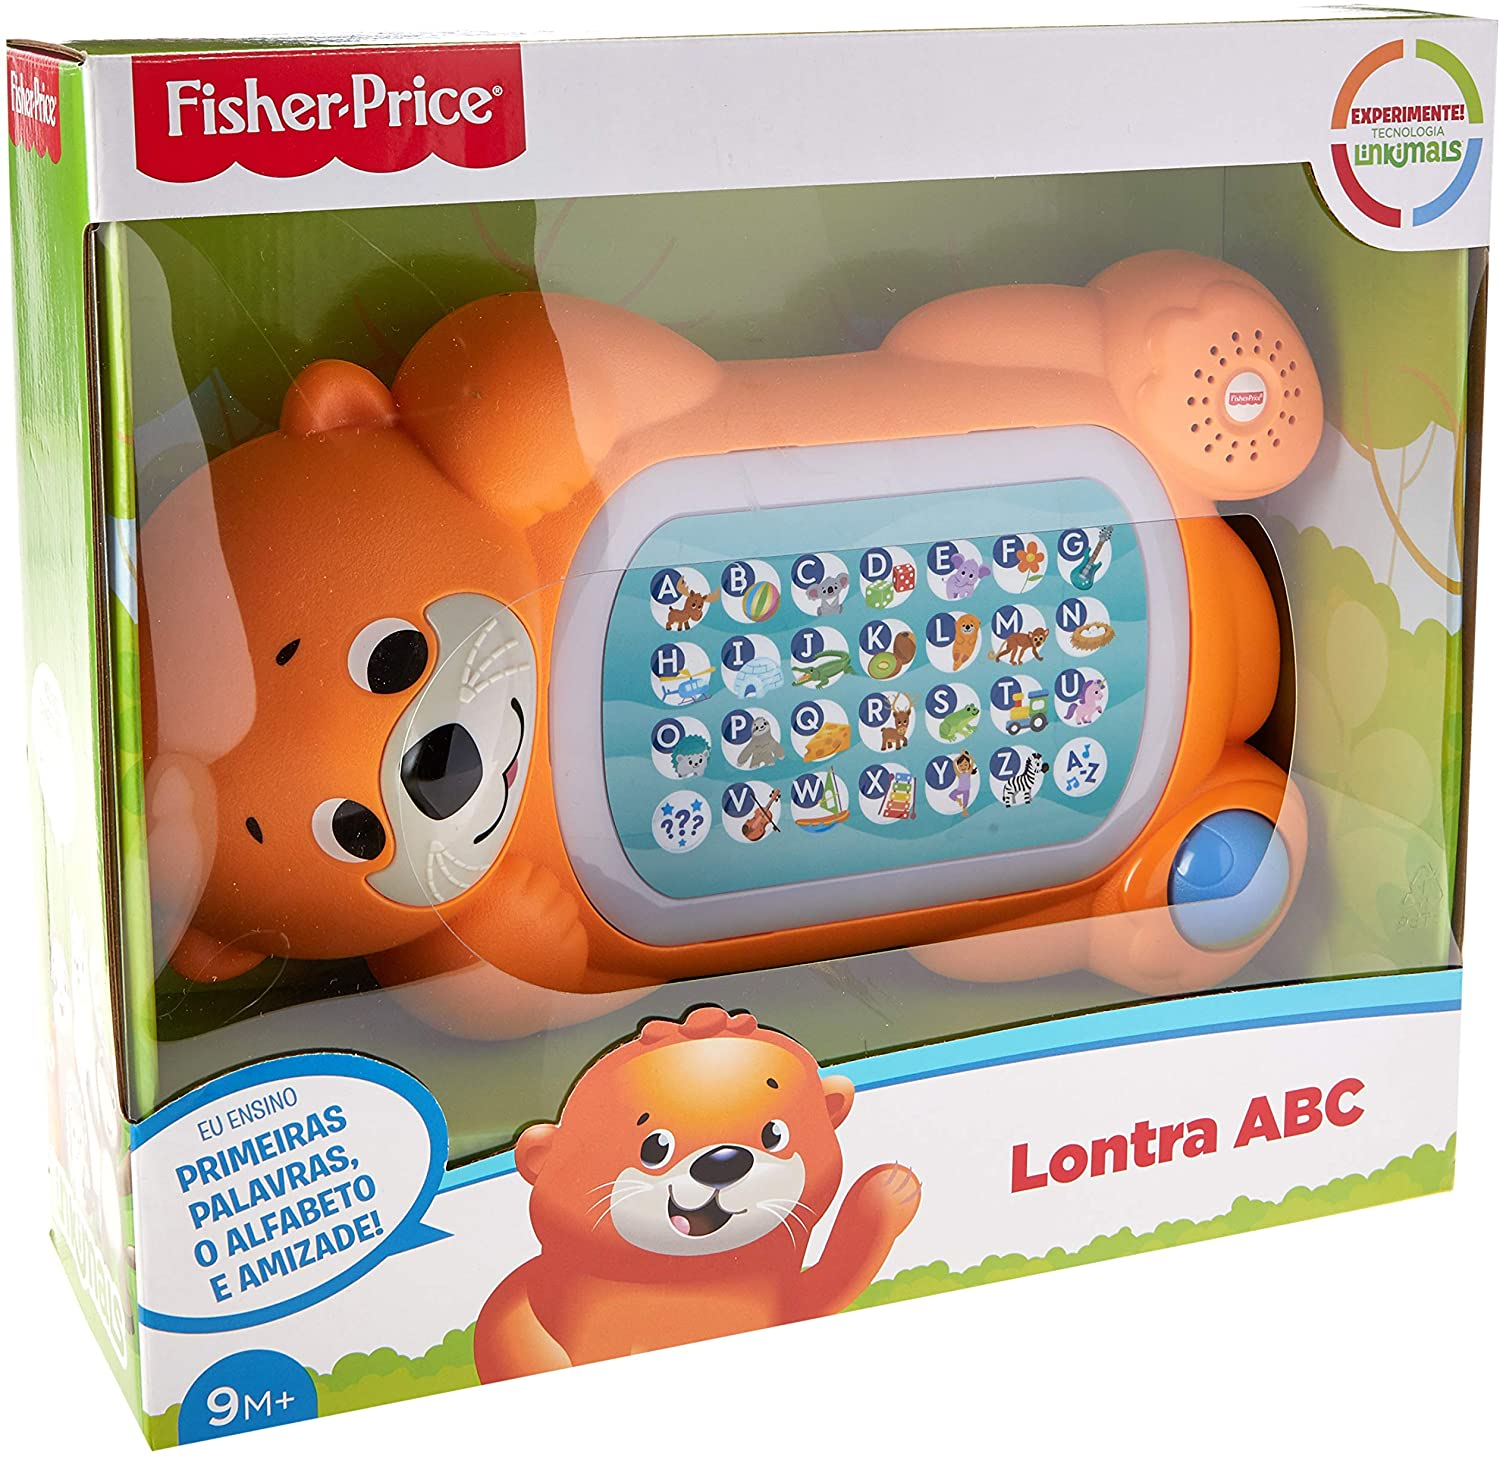 Linkimals Lontra ABC Fisher Price - Mattel GJP62